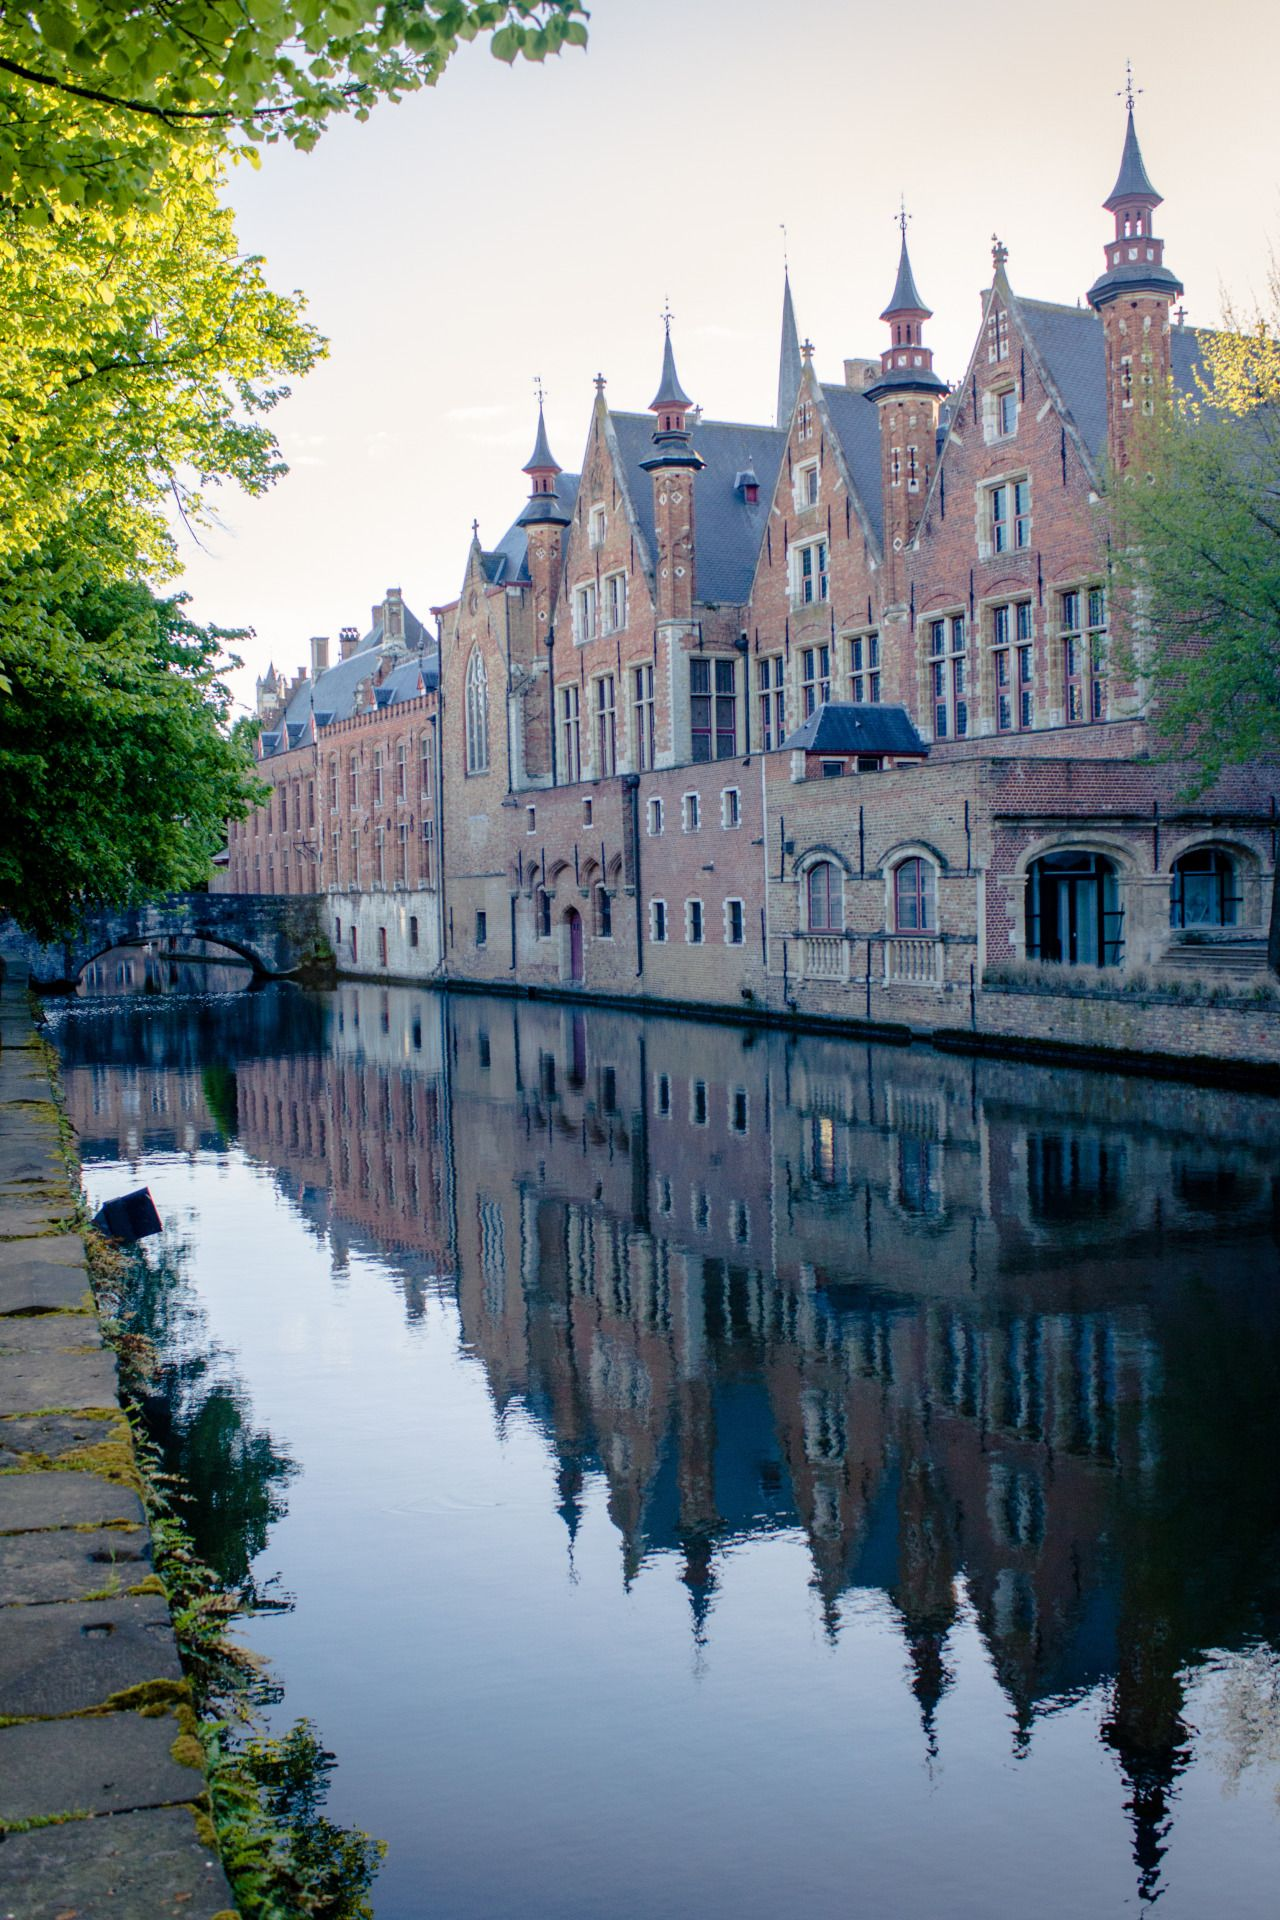 Brugge, Belgium. / Photo: Evelyn Lee / bthegeographyofmoments: a stroll, by vinylmemories on flickr